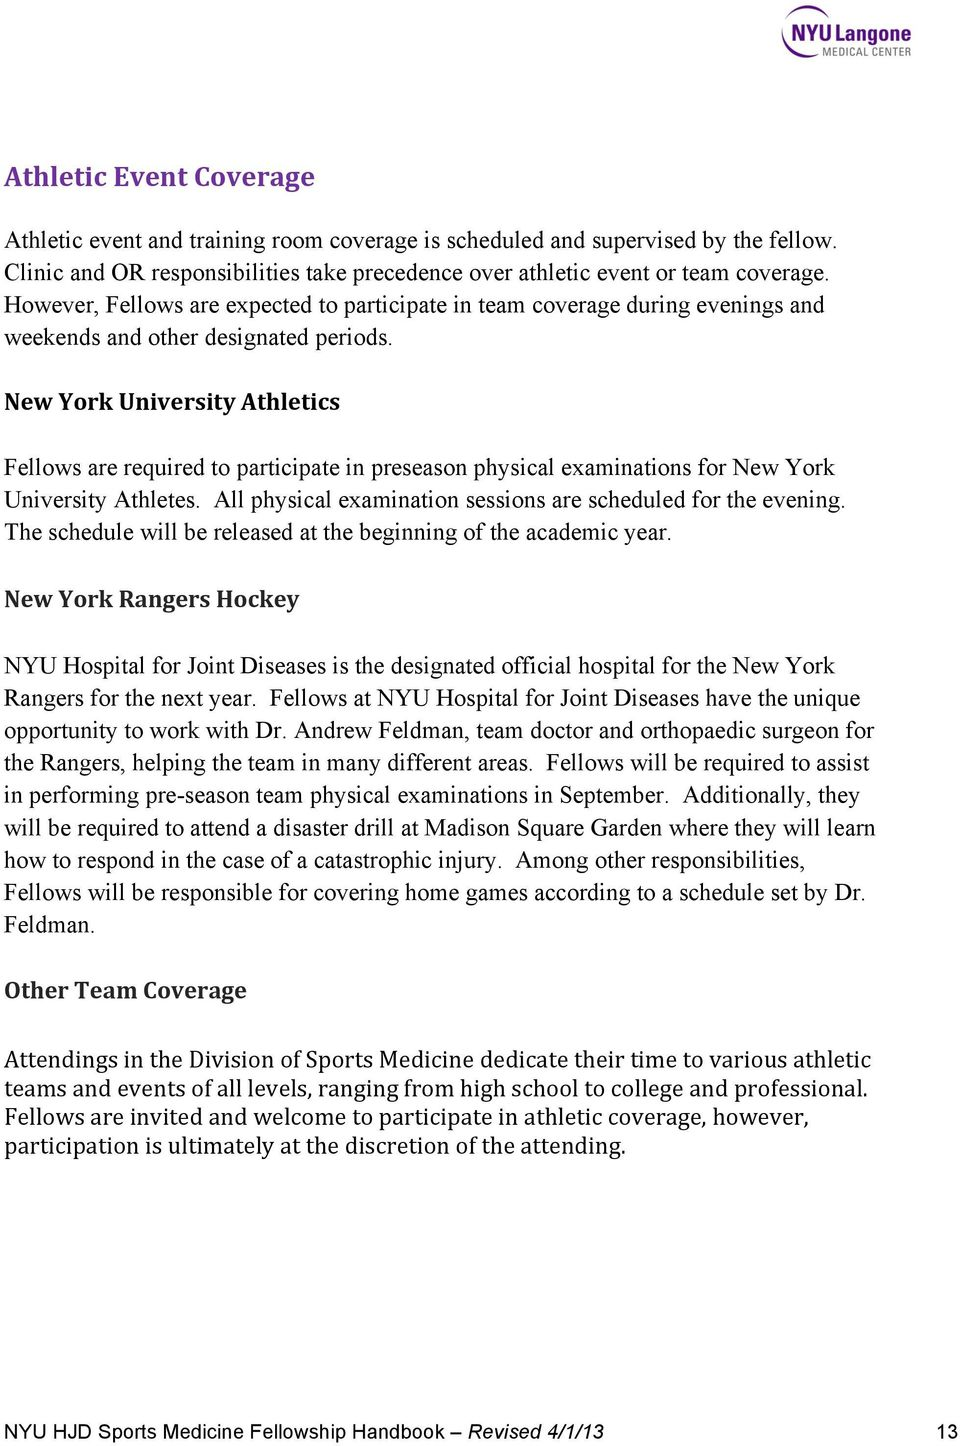 NYU HOSPITAL FOR JOINT DISEASES  Sports Medicine Fellowship